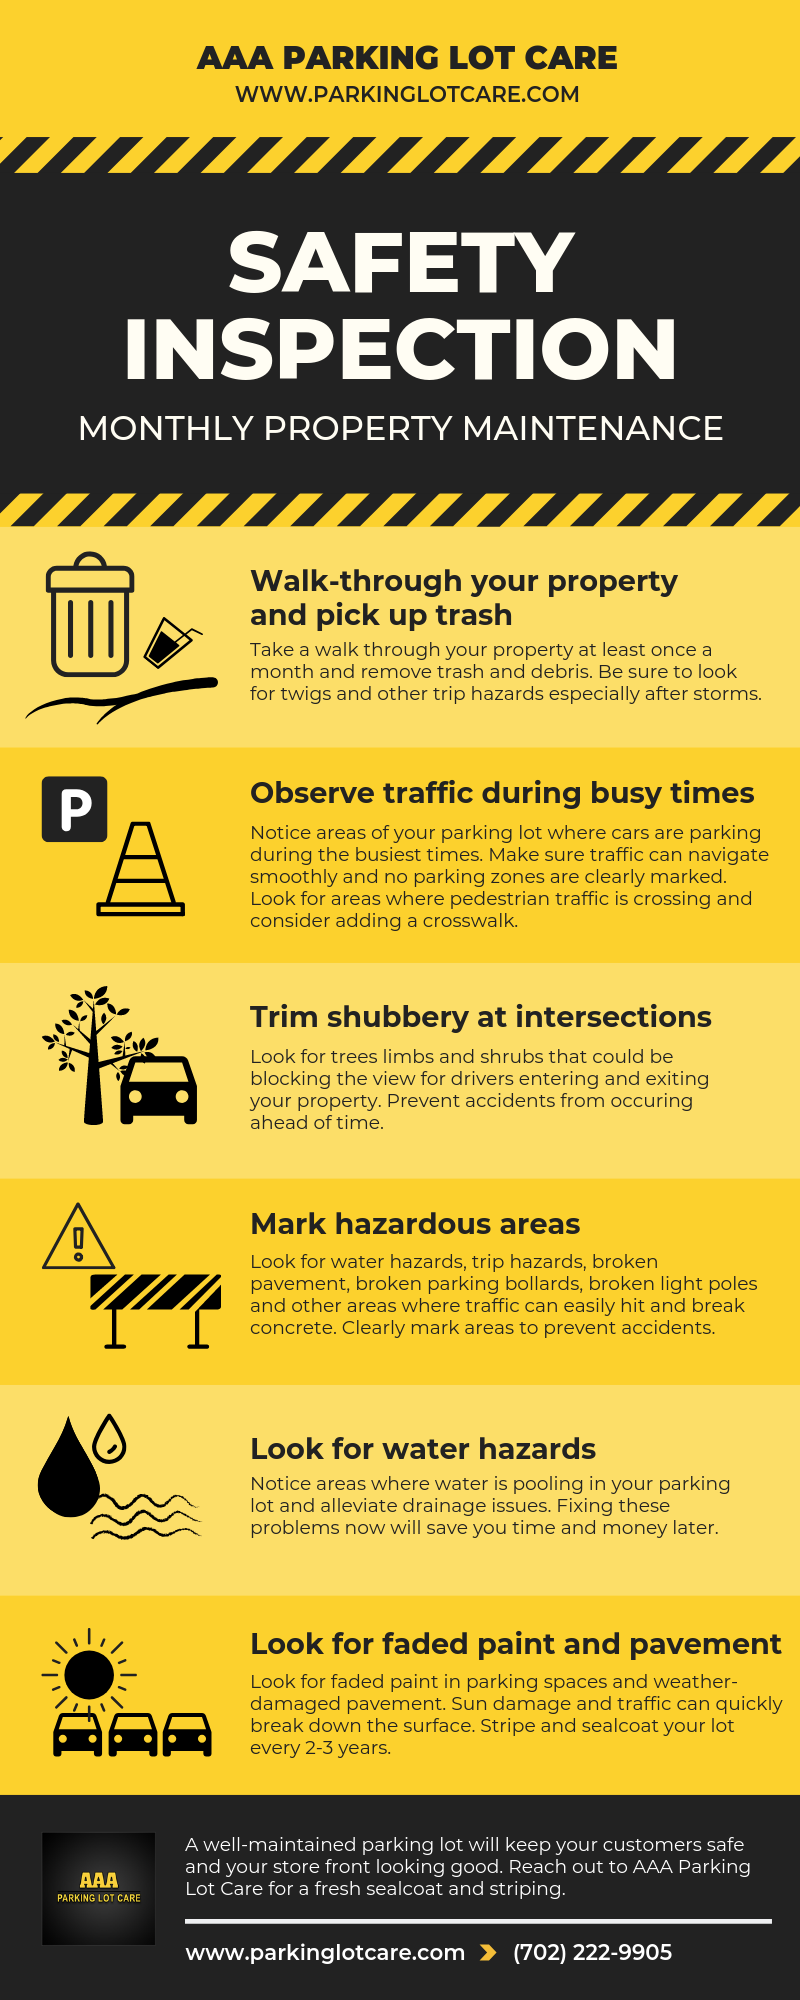 Parking Lot Safety Monthly Maintenance Checklist